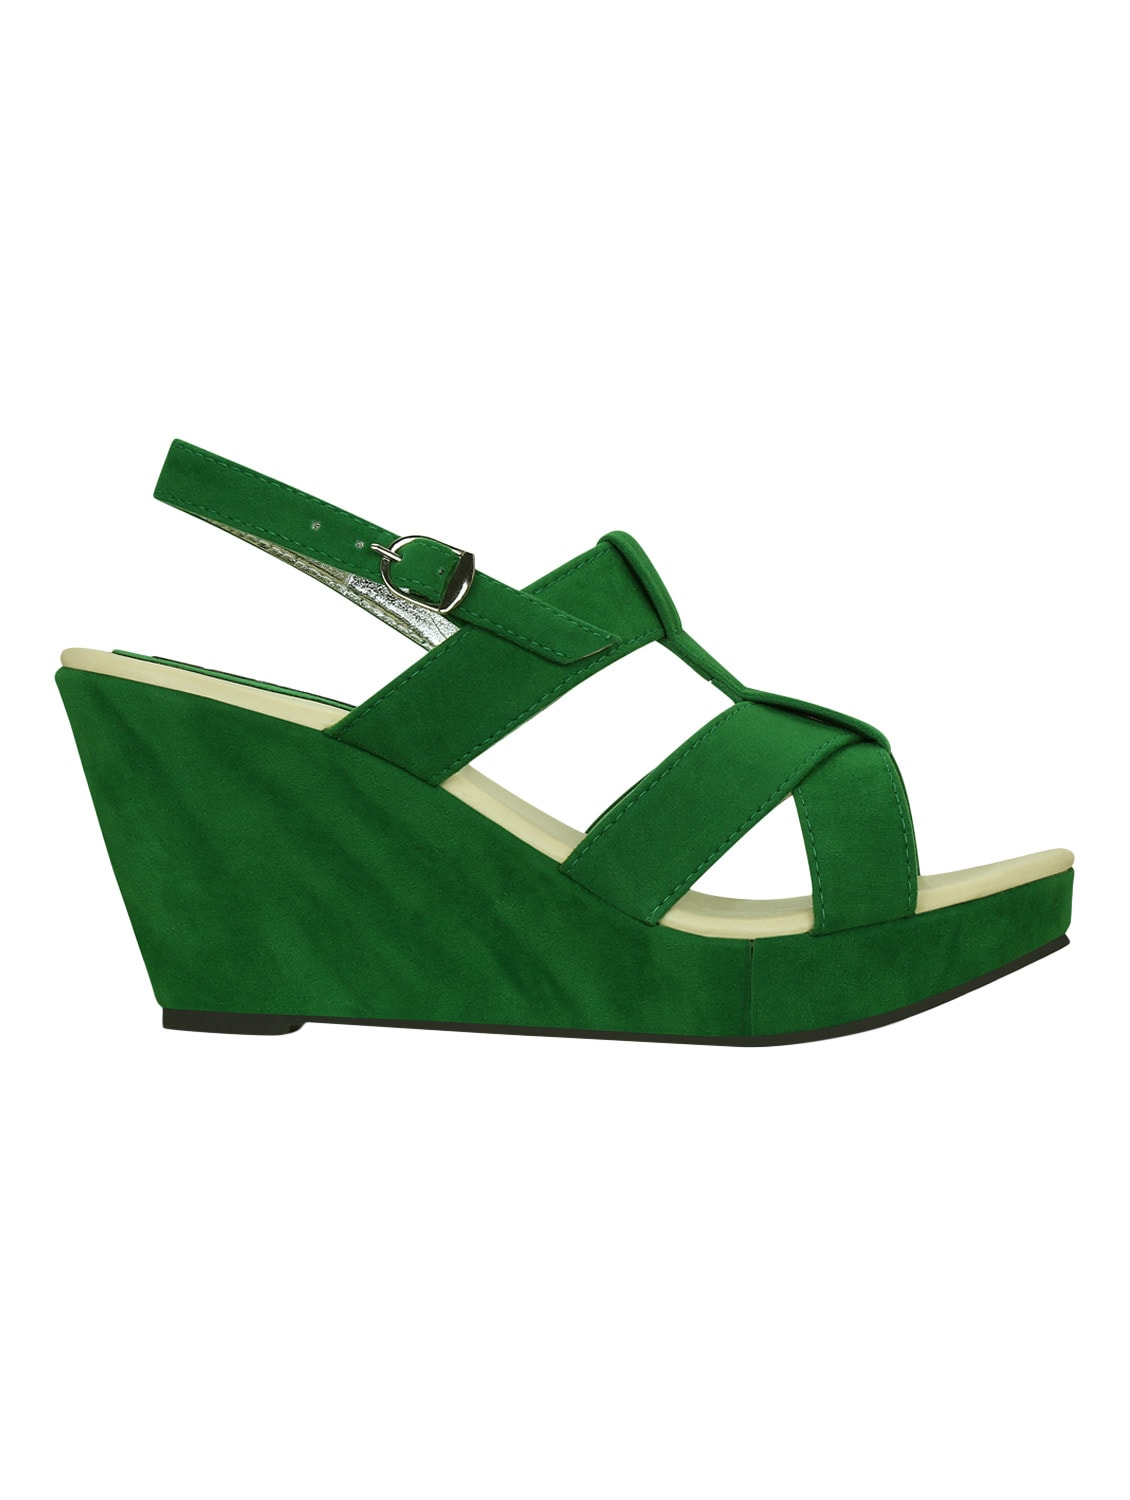 d5989960c86d Buy Kielz-green-wedge-sandals for Women from Kielz for ₹749 at 50% off